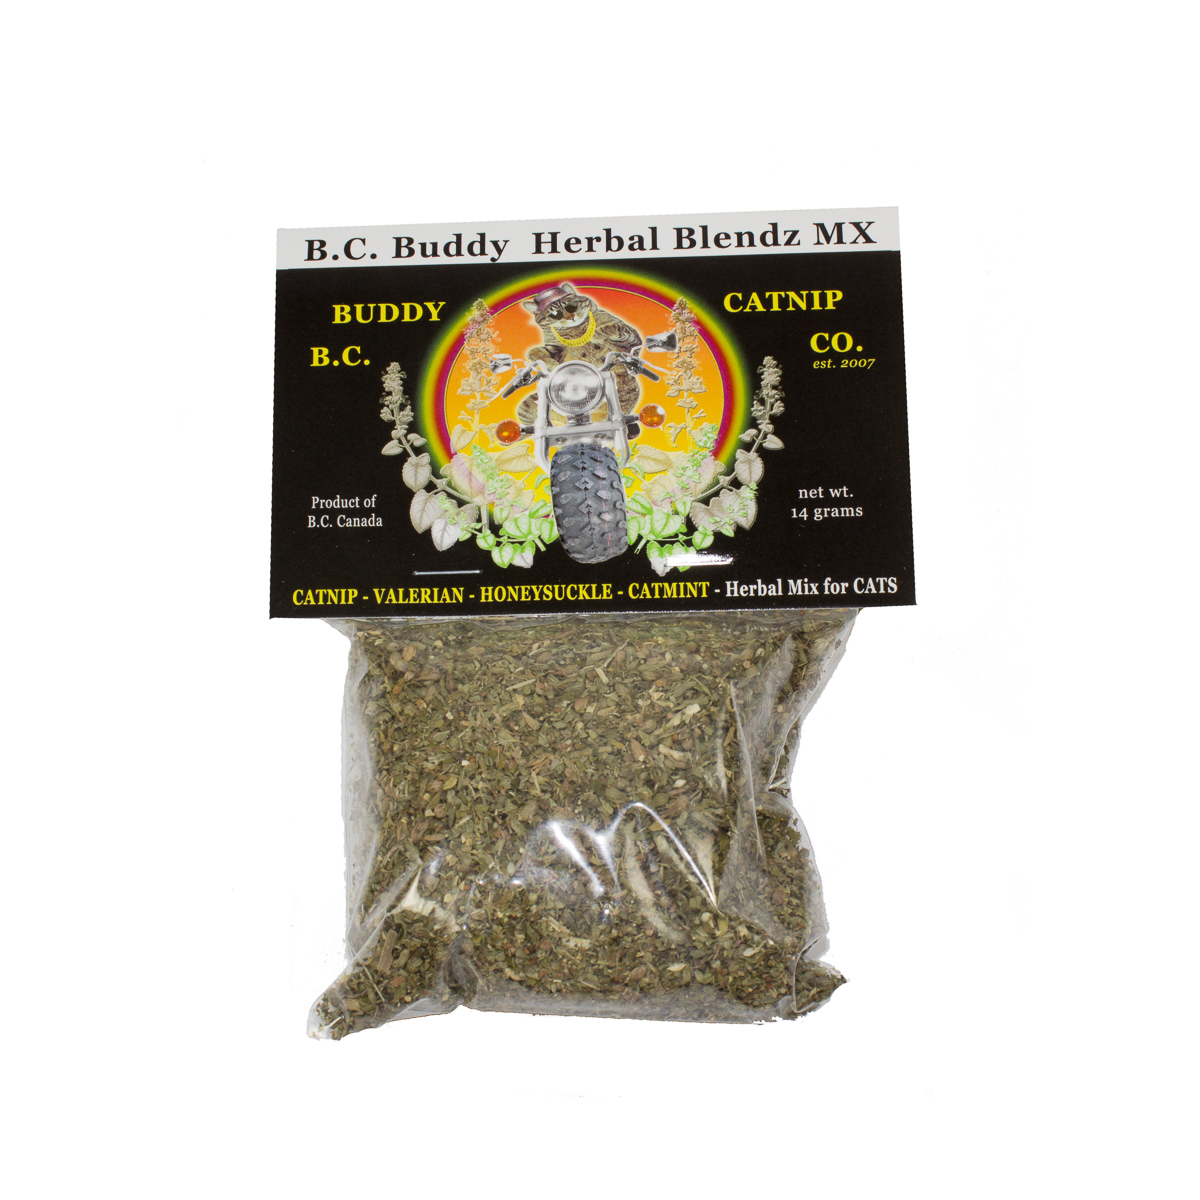 B.C. Buddy Herbal Blenz MX